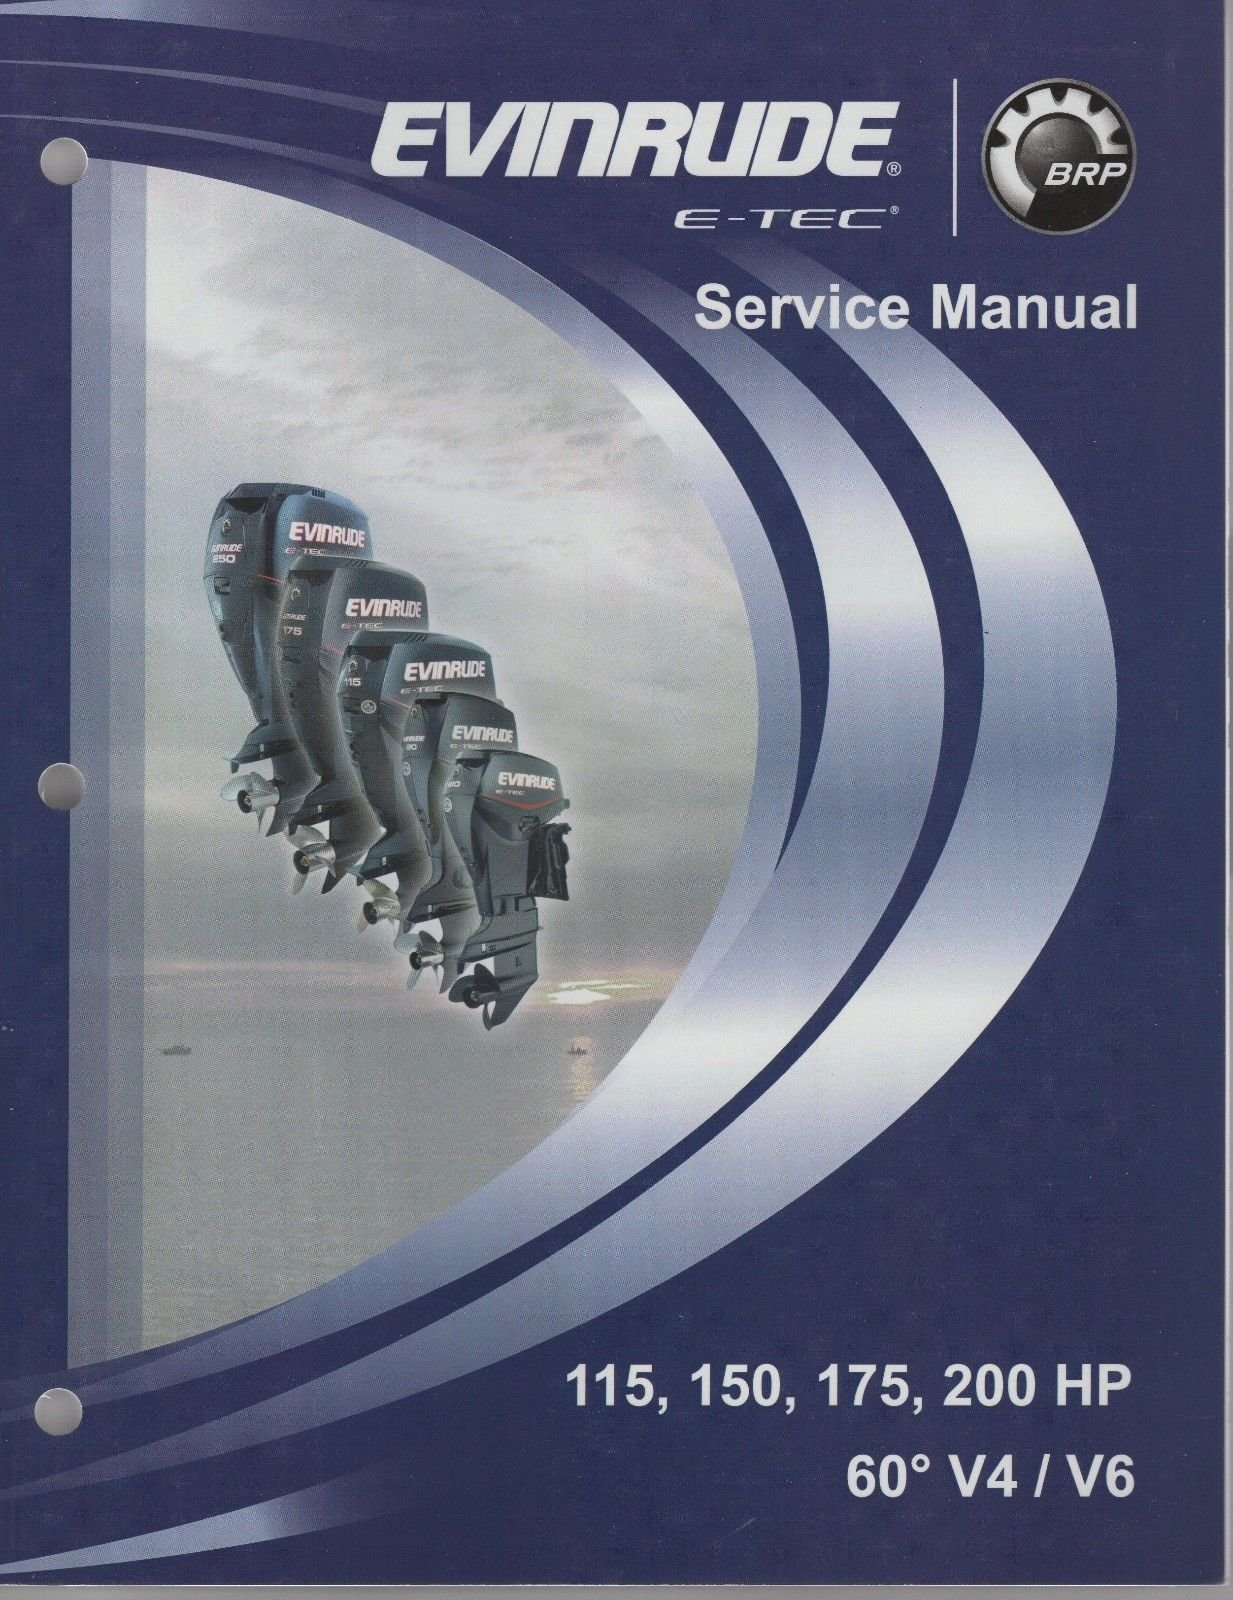 Service Manual Evinrude Etec 115 Wiring Diagram 2015 E Tec 40 2008 Outboard 150 175 200 Hp 60 V4 V6 Rh Amazon Com 2009 2006